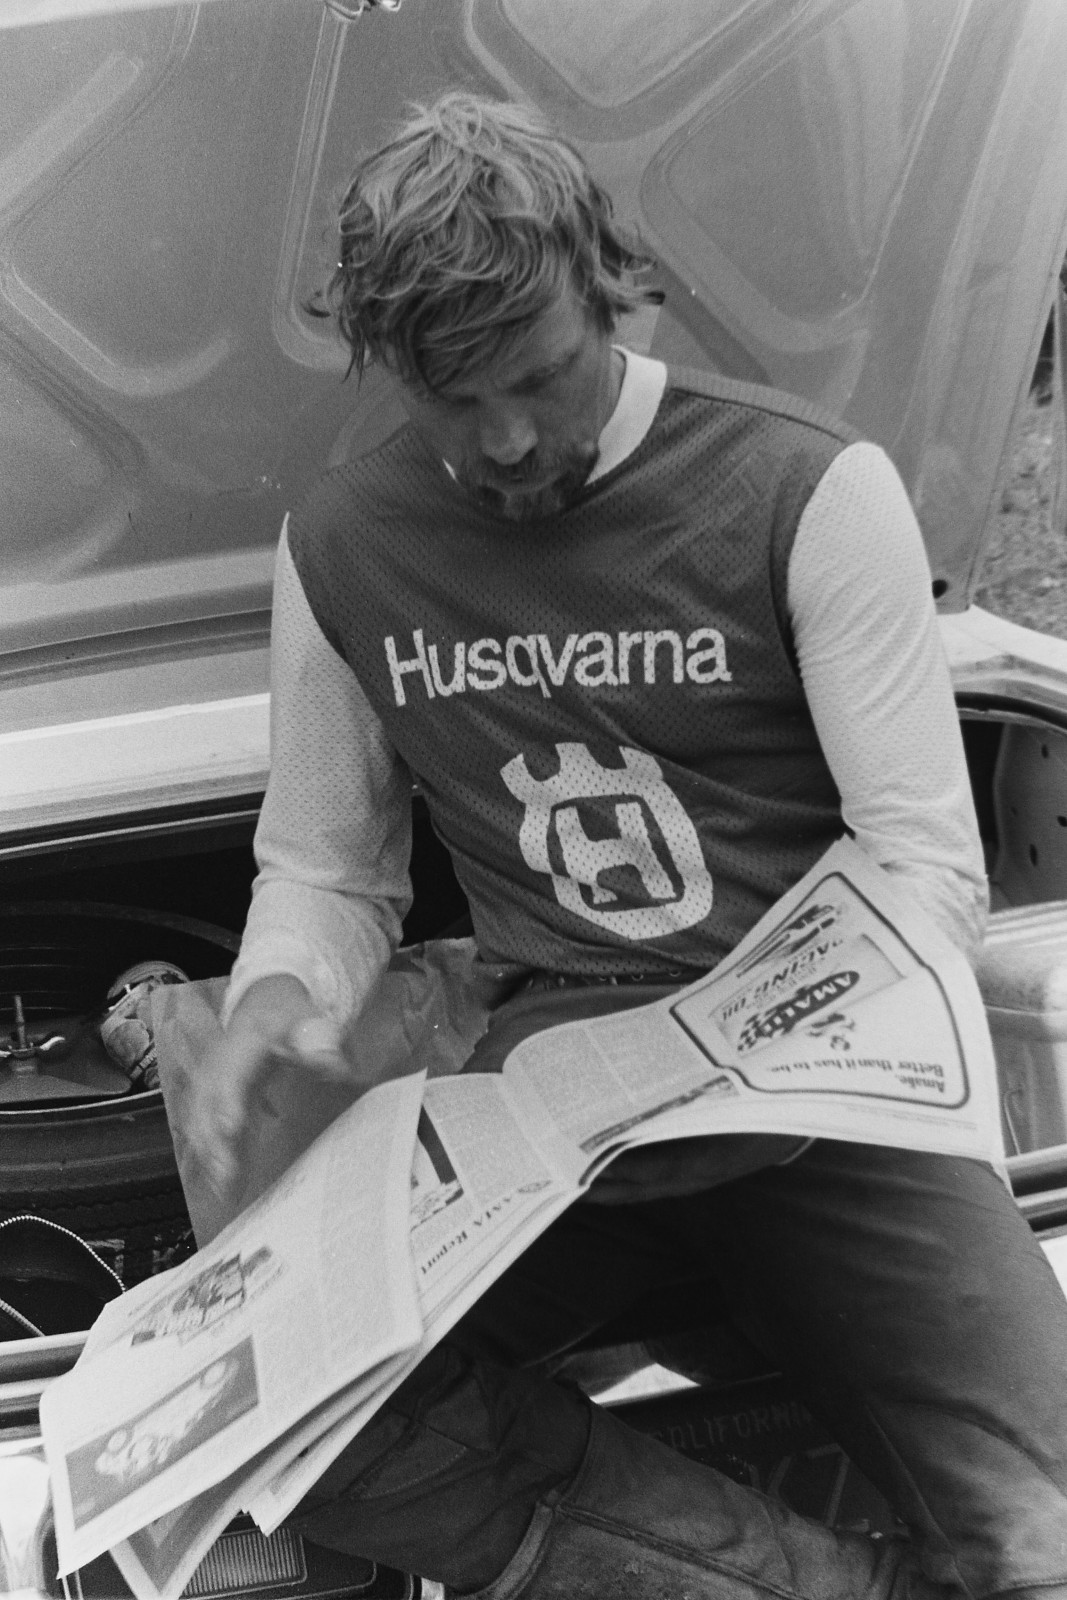 Mikkola checks out the latest Cycle News.